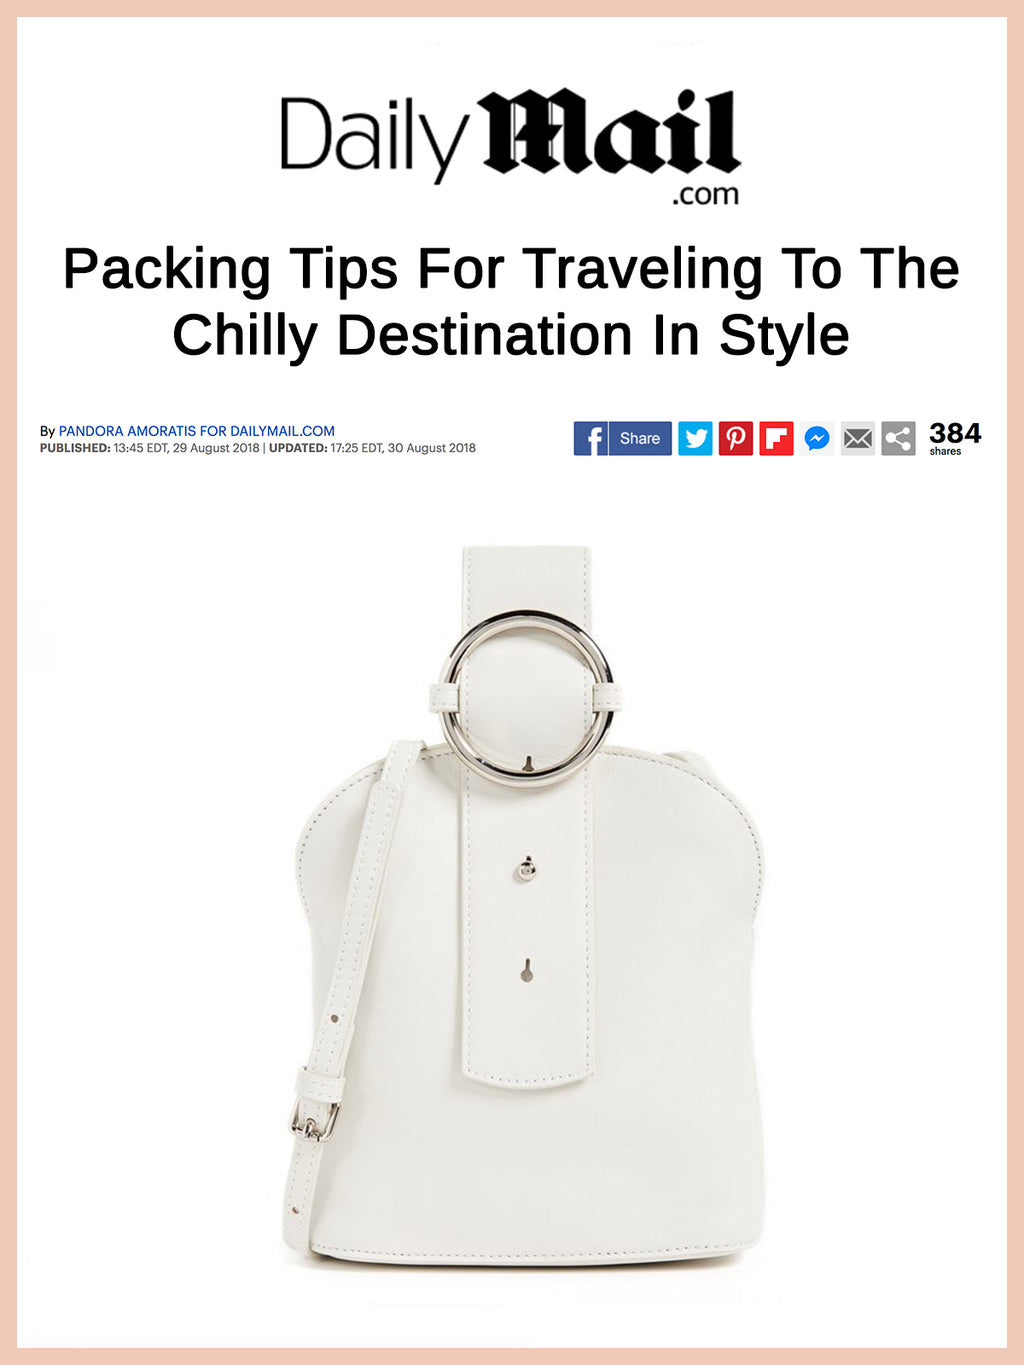 DAILY MAIL, Packing Tips For Traveling To The Chilly Destination In Style